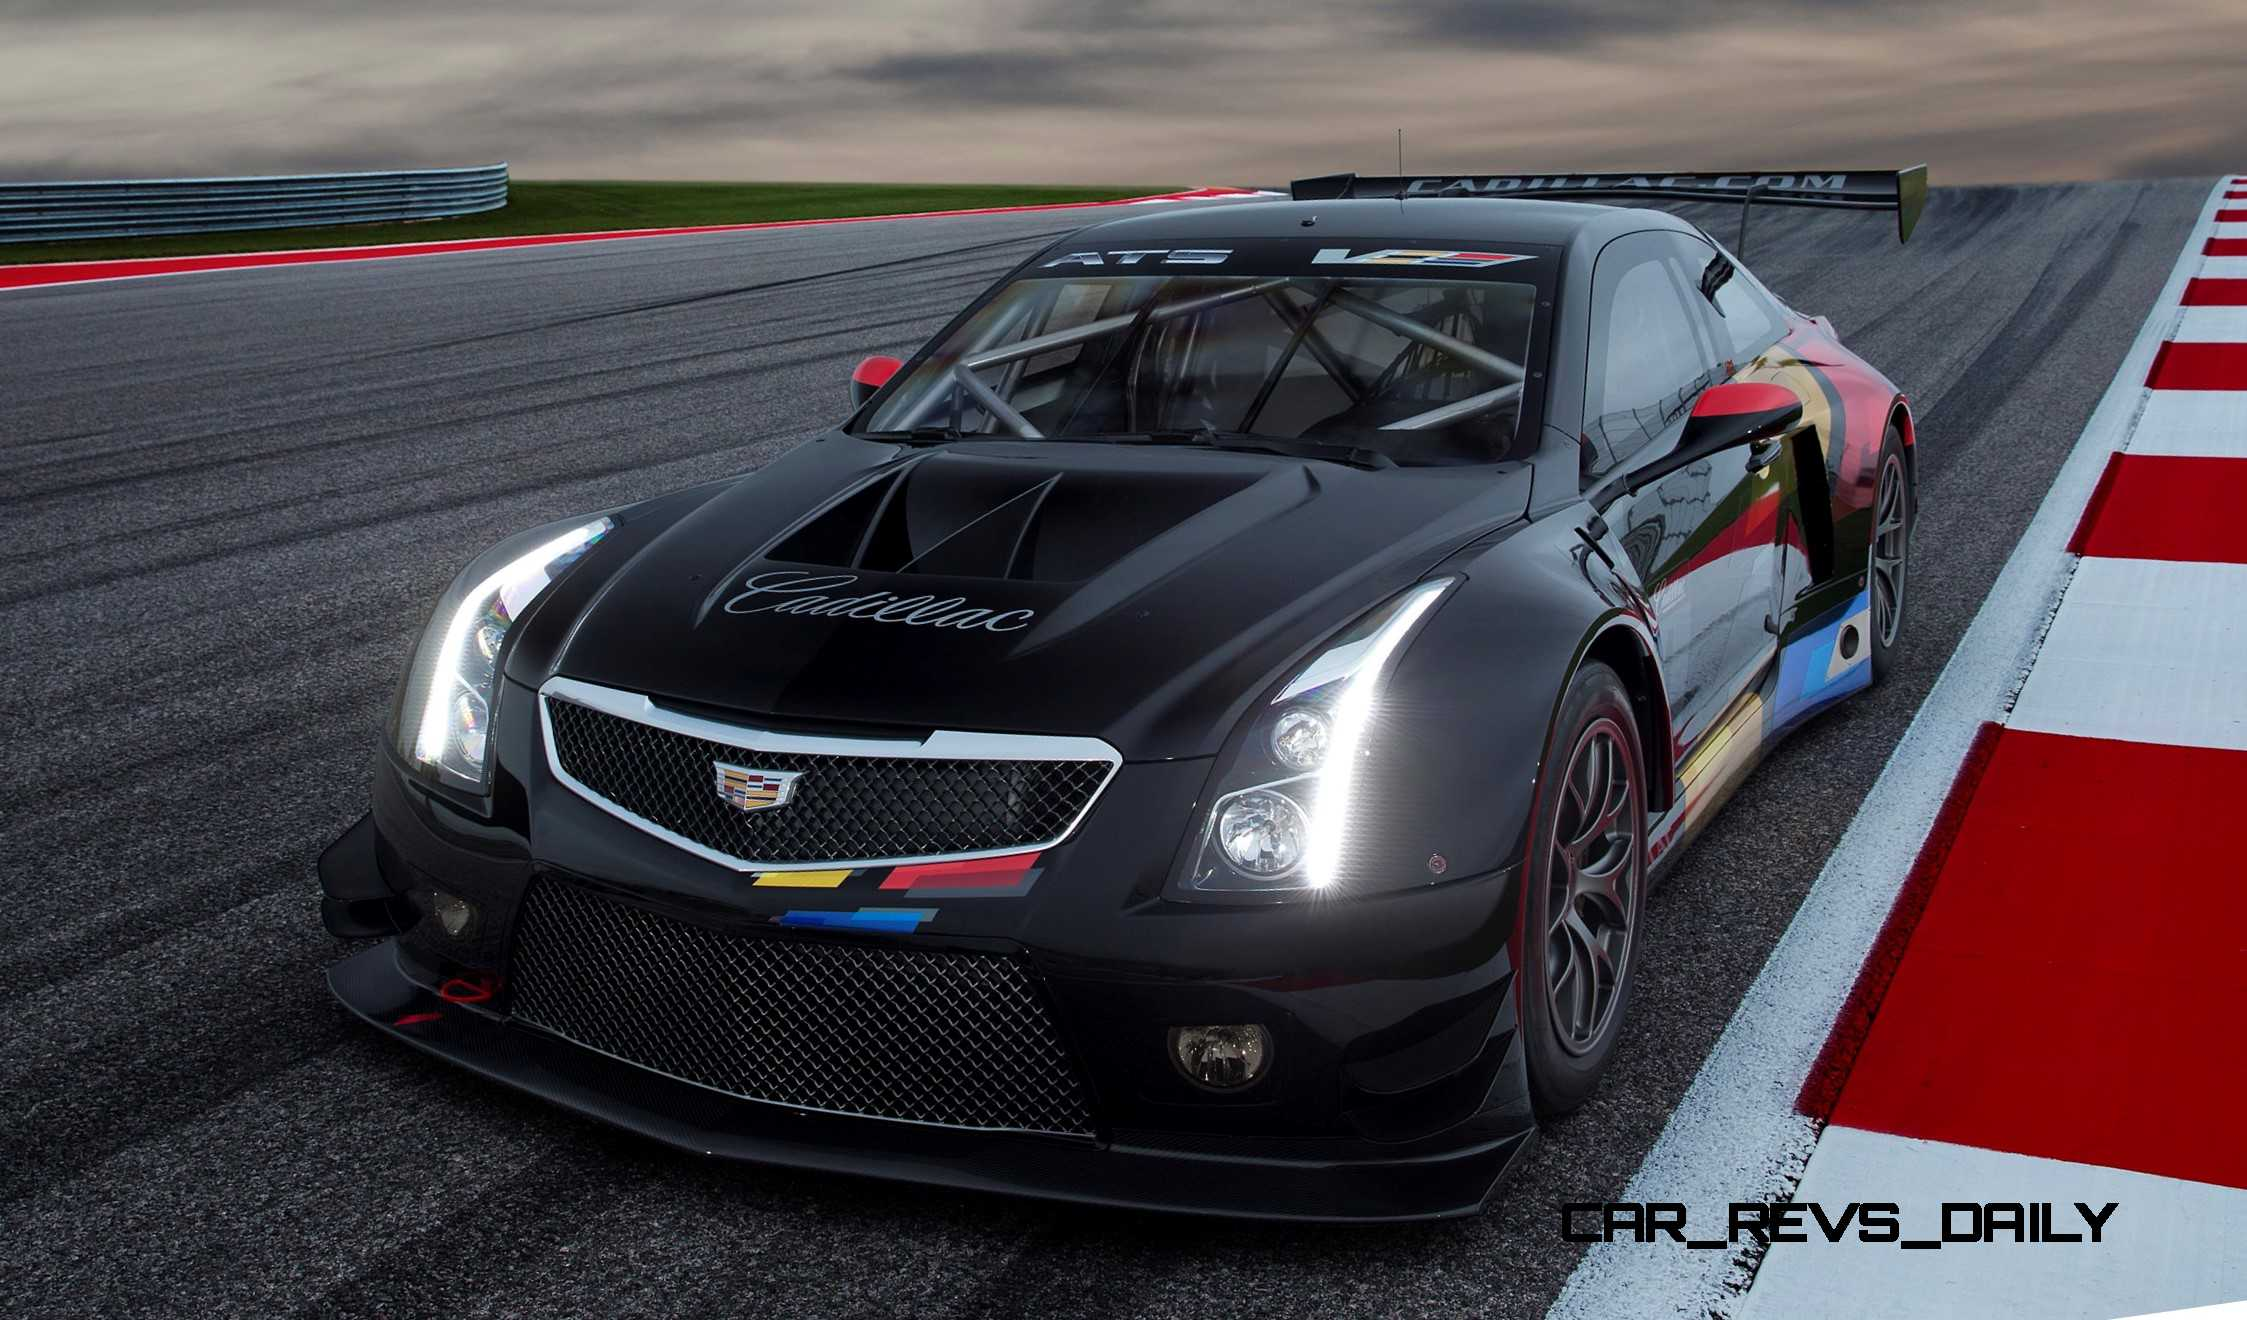 Cadillac Ats V Coupe >> 2015 Cadillac ATS-V.R Is FIA GT3 Racecar Writ Large - In Cursive!